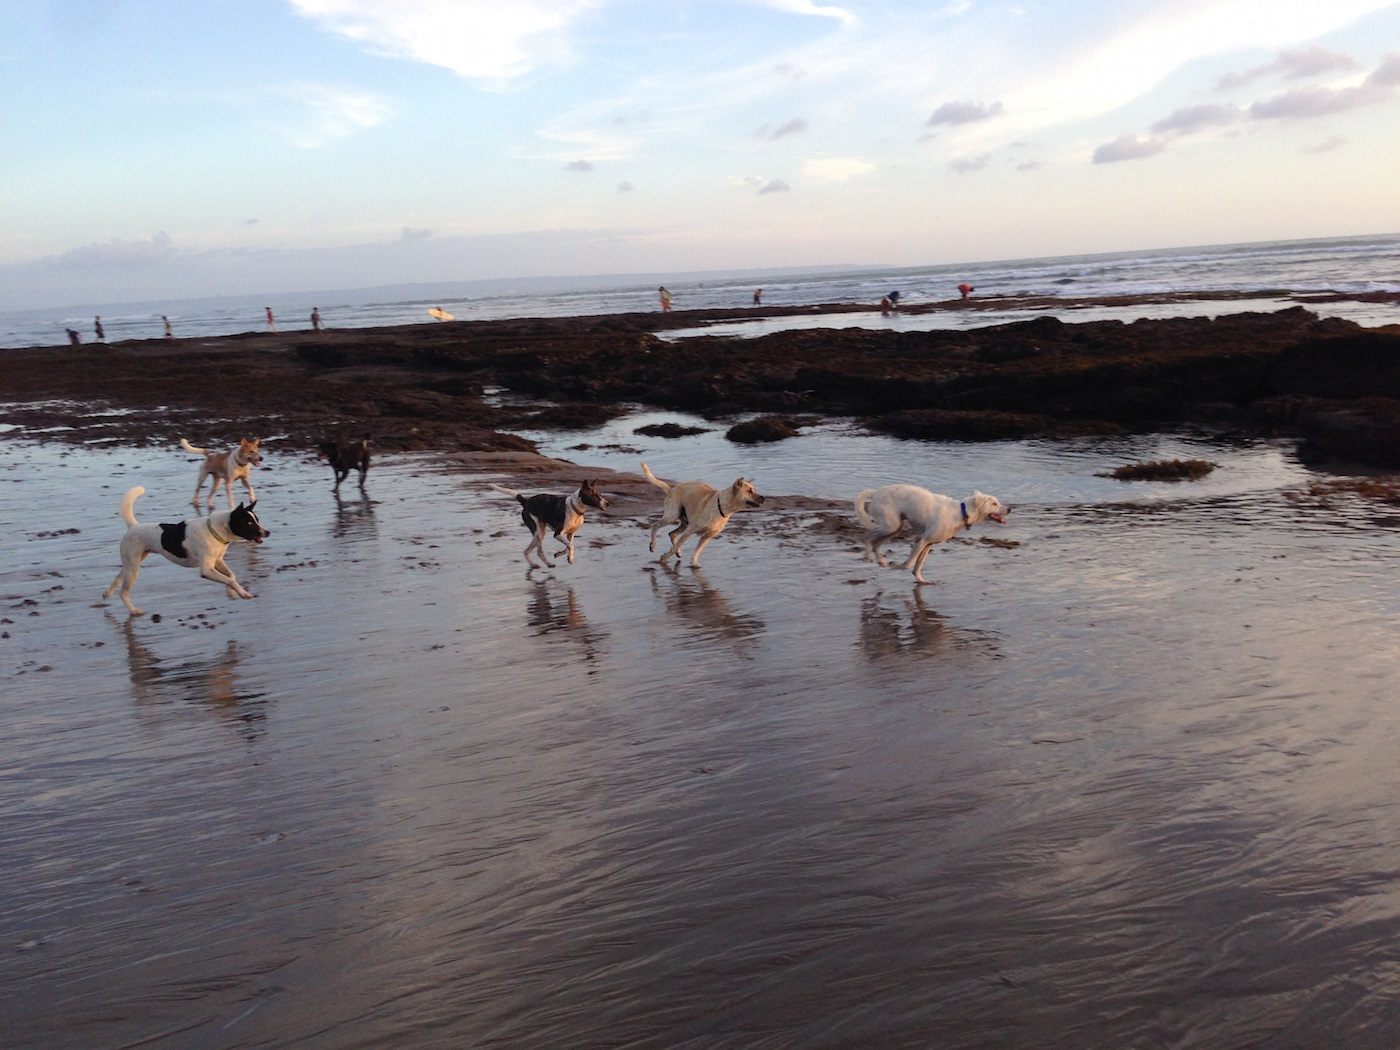 free-ranging_and_companion_bali_dog_interaction_photo_credit_marco_adda.jpg